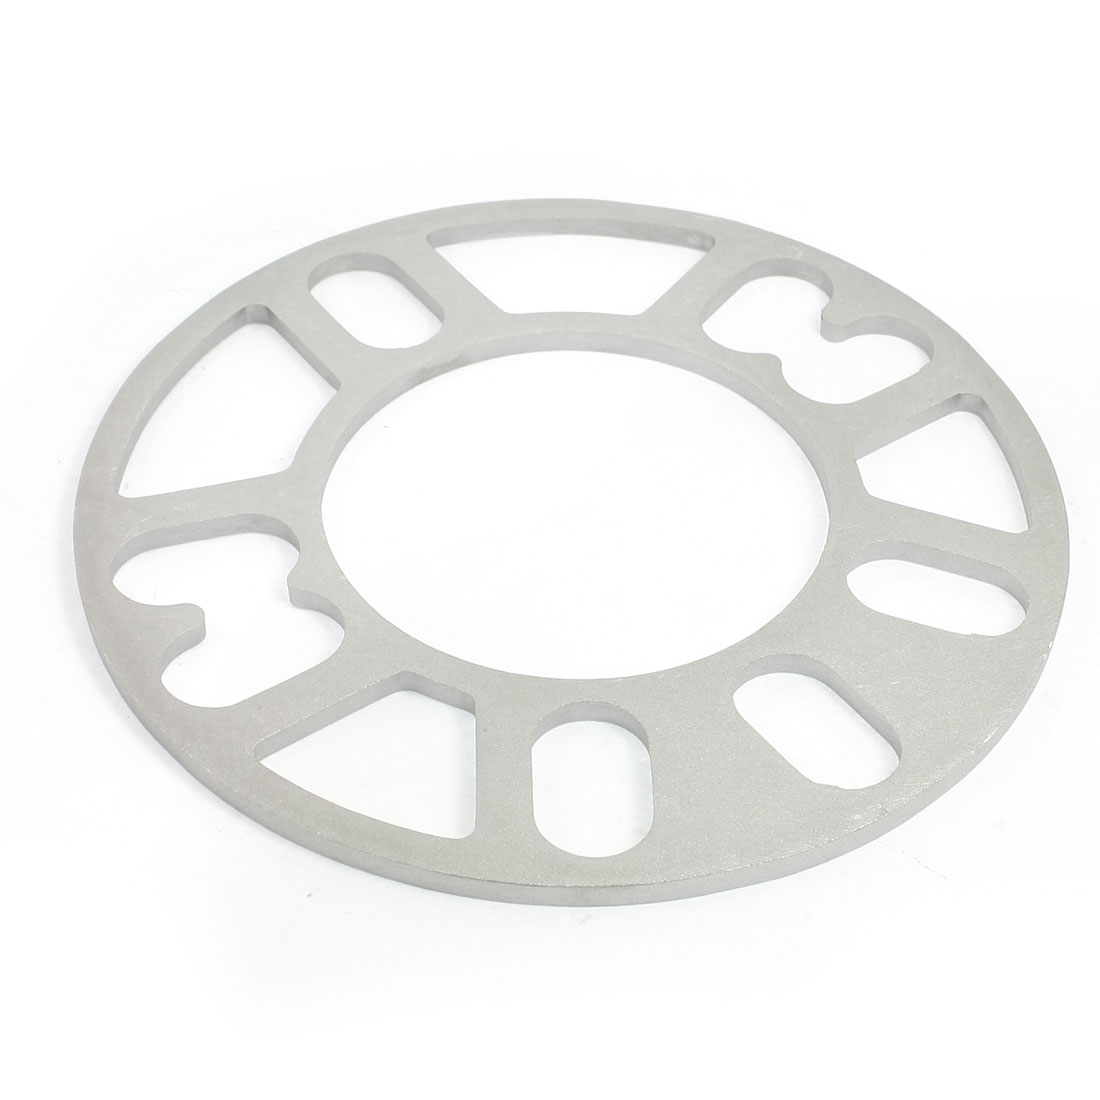 Aluminum Alloy 4 and 5 Lug 5mm Thickness Wheel Spacer Gasket